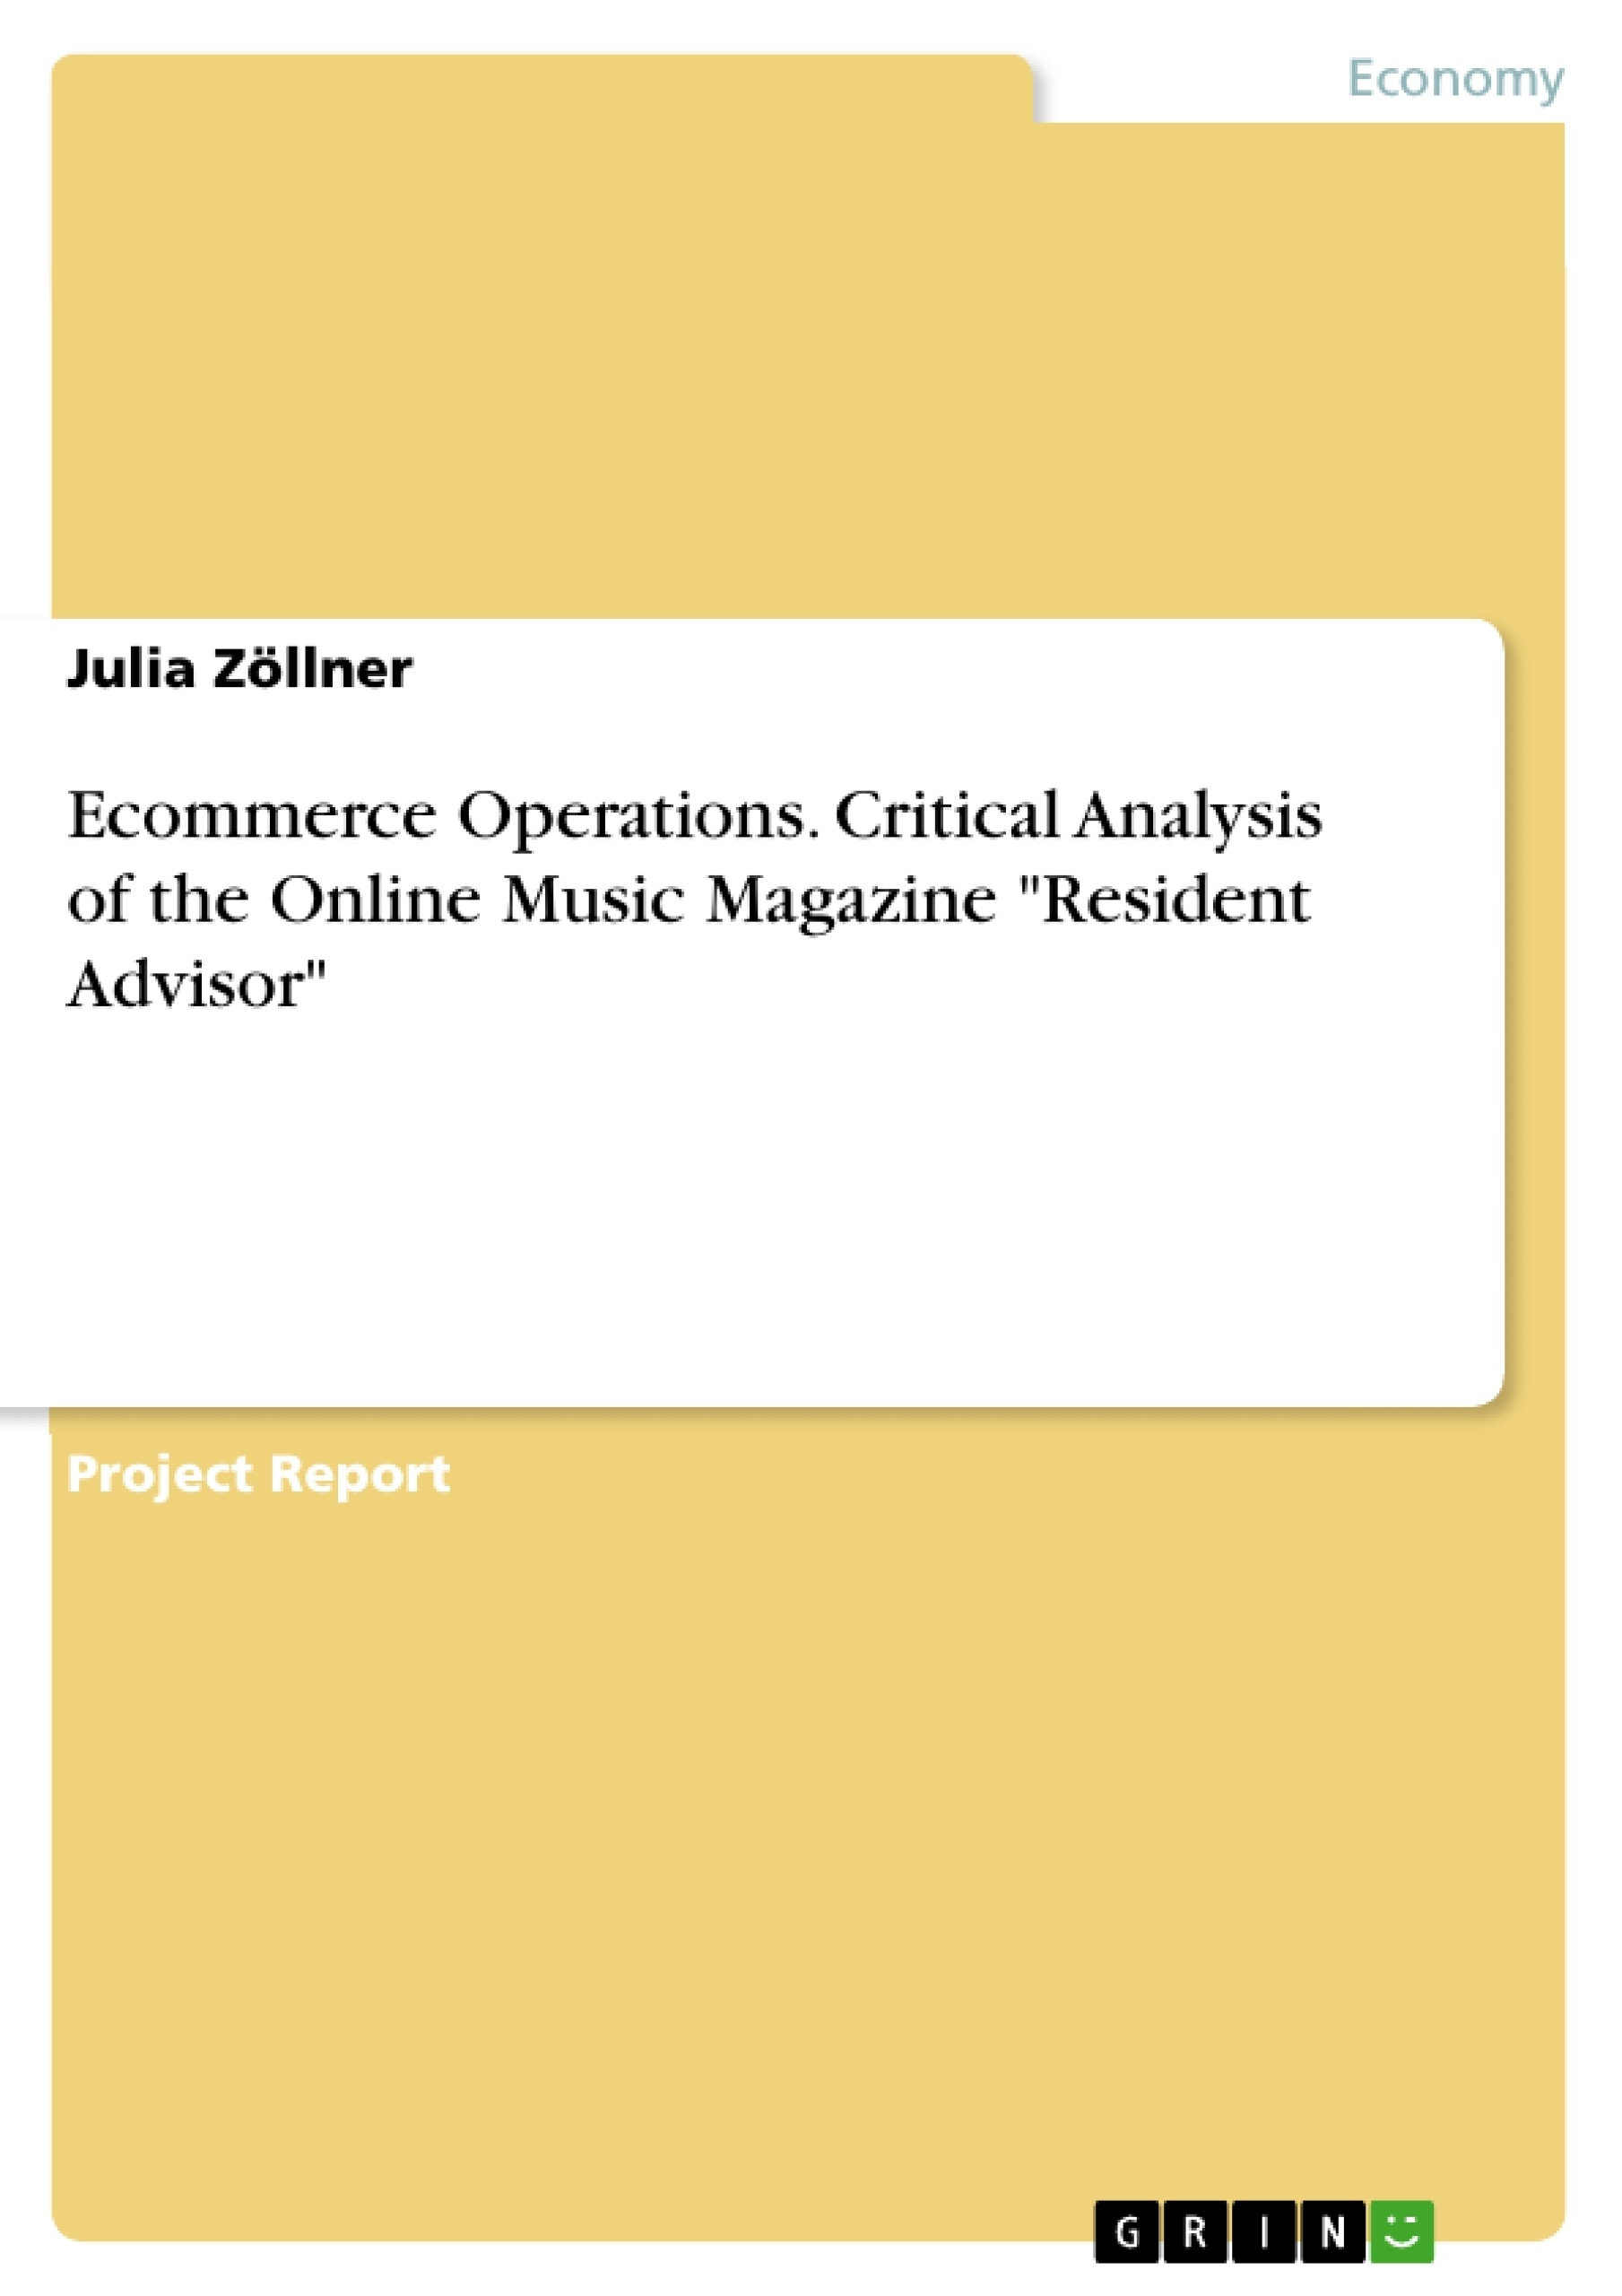 GRIN - Ecommerce Operations  Critical Analysis of the Online Music Magazine